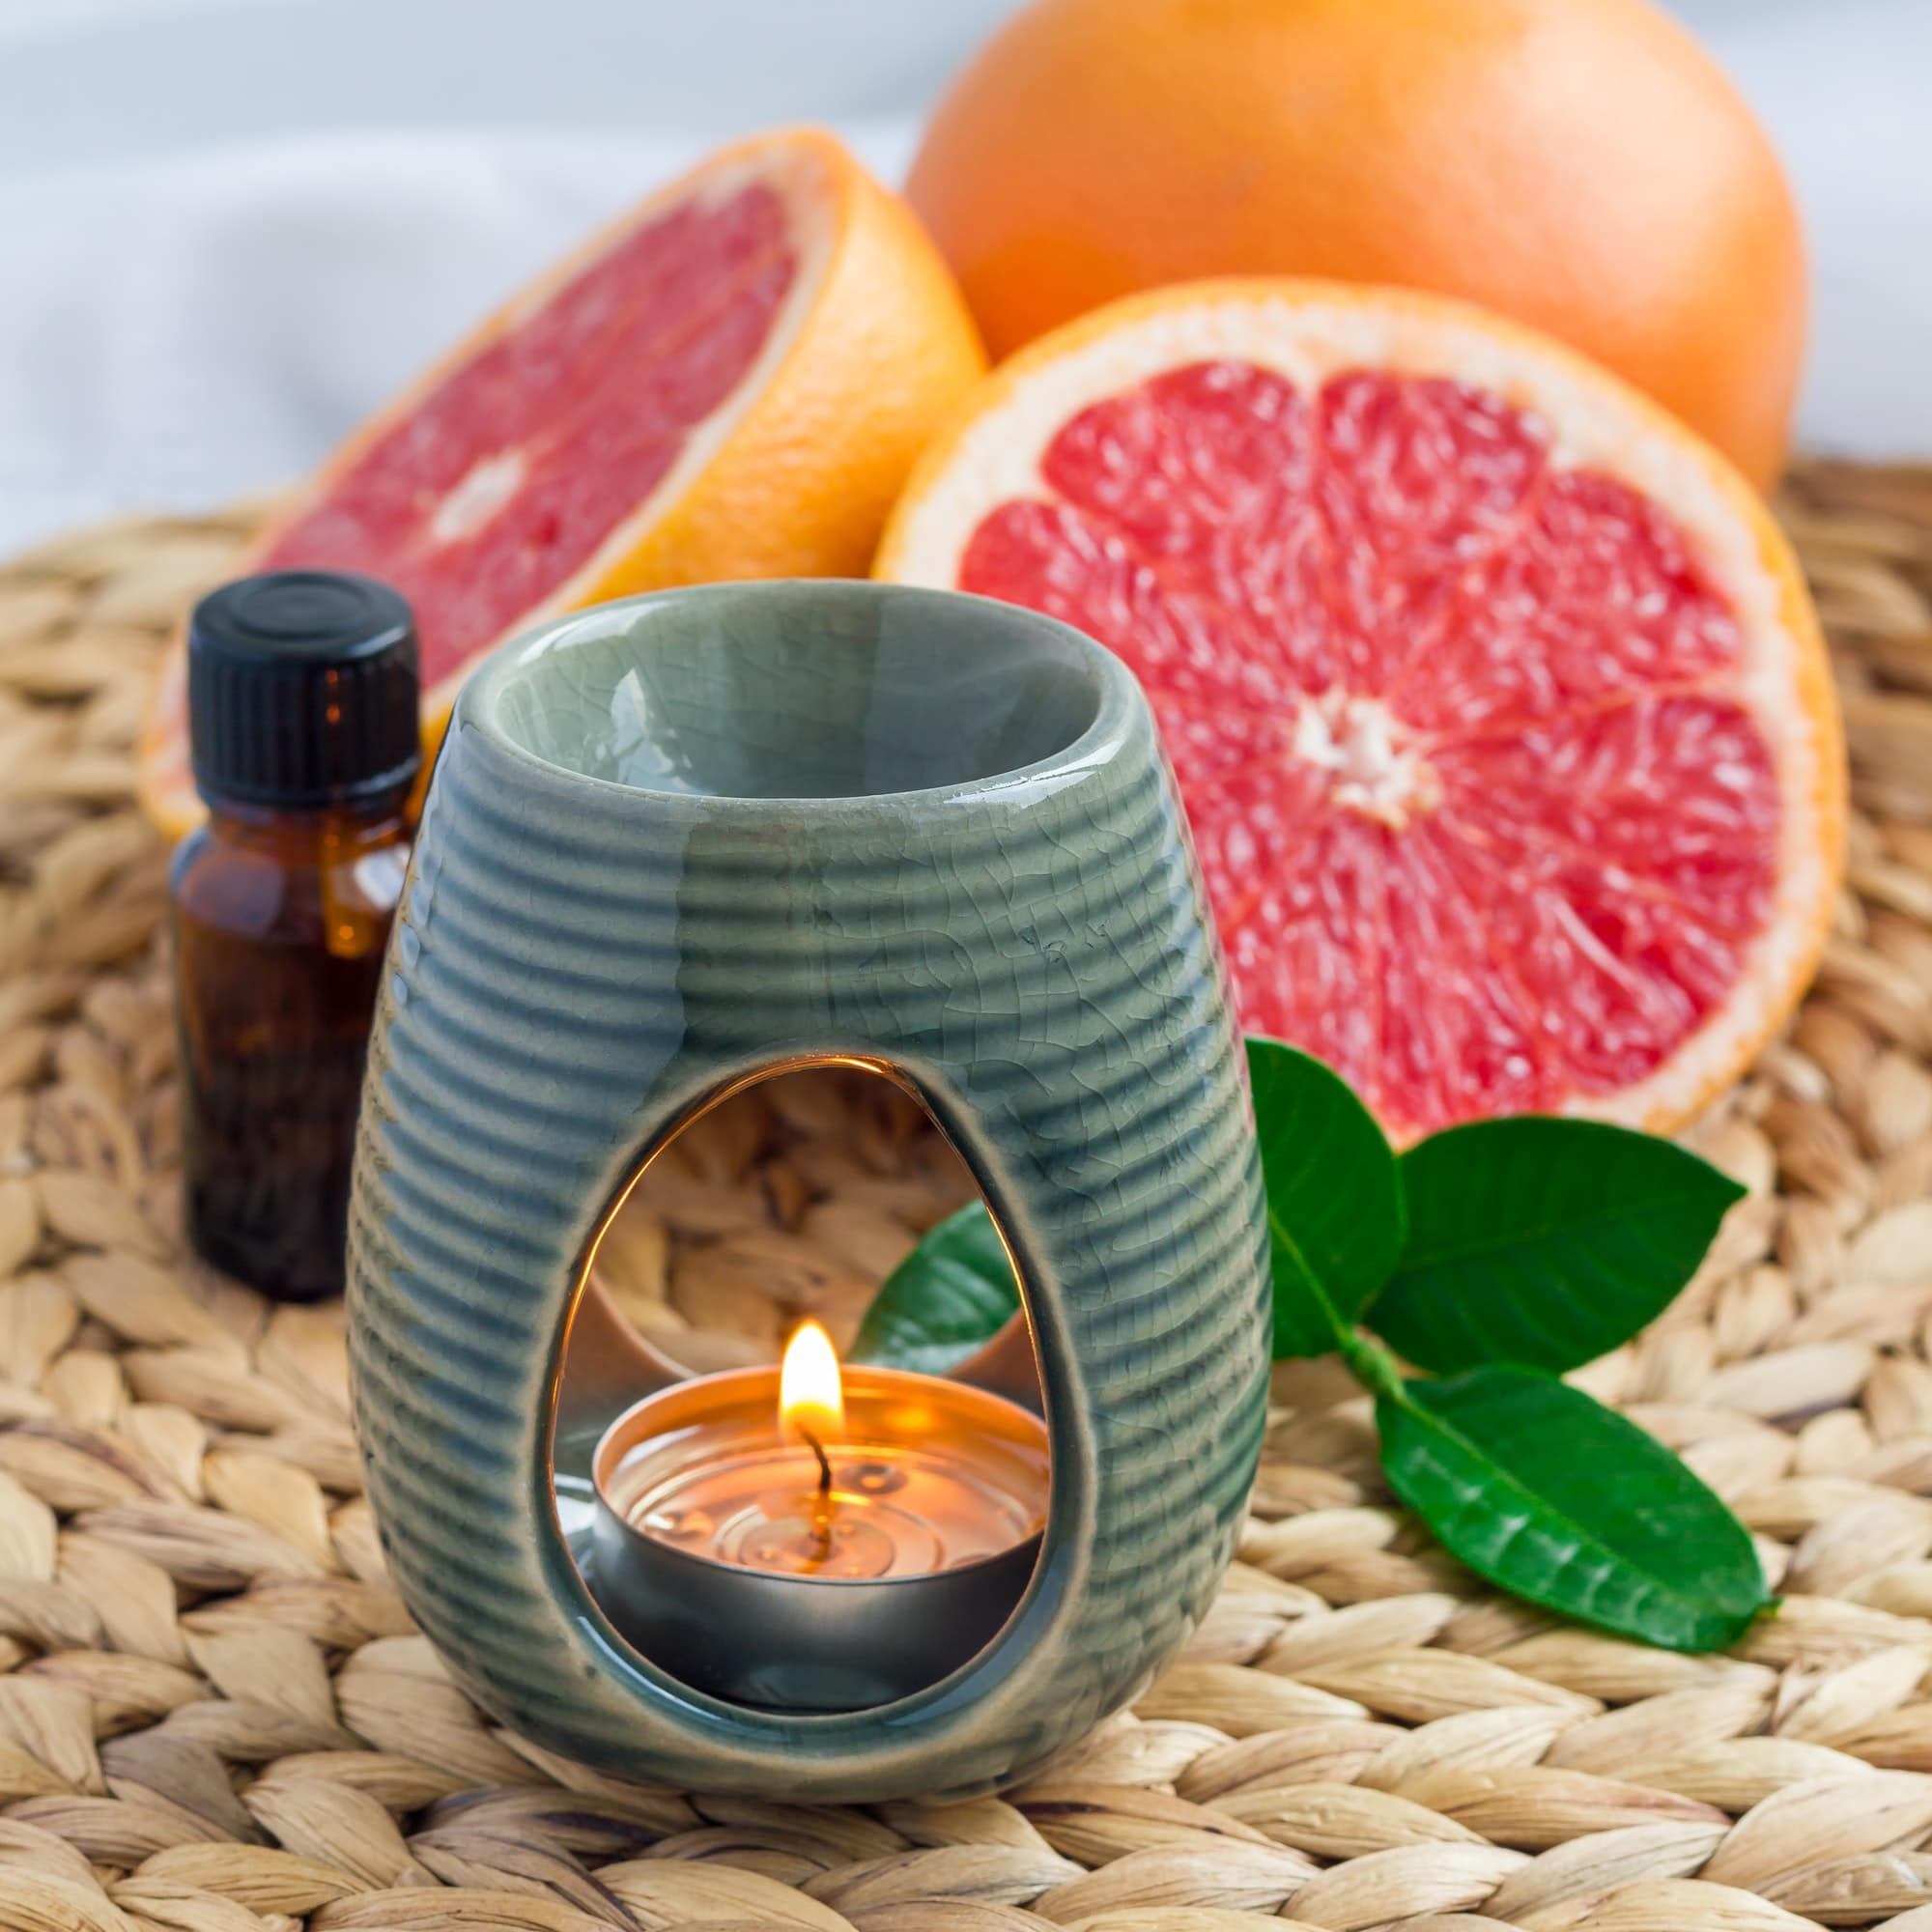 Aroma lamp with grapefruit essential oil on woven mat, grapefruits on background, square format